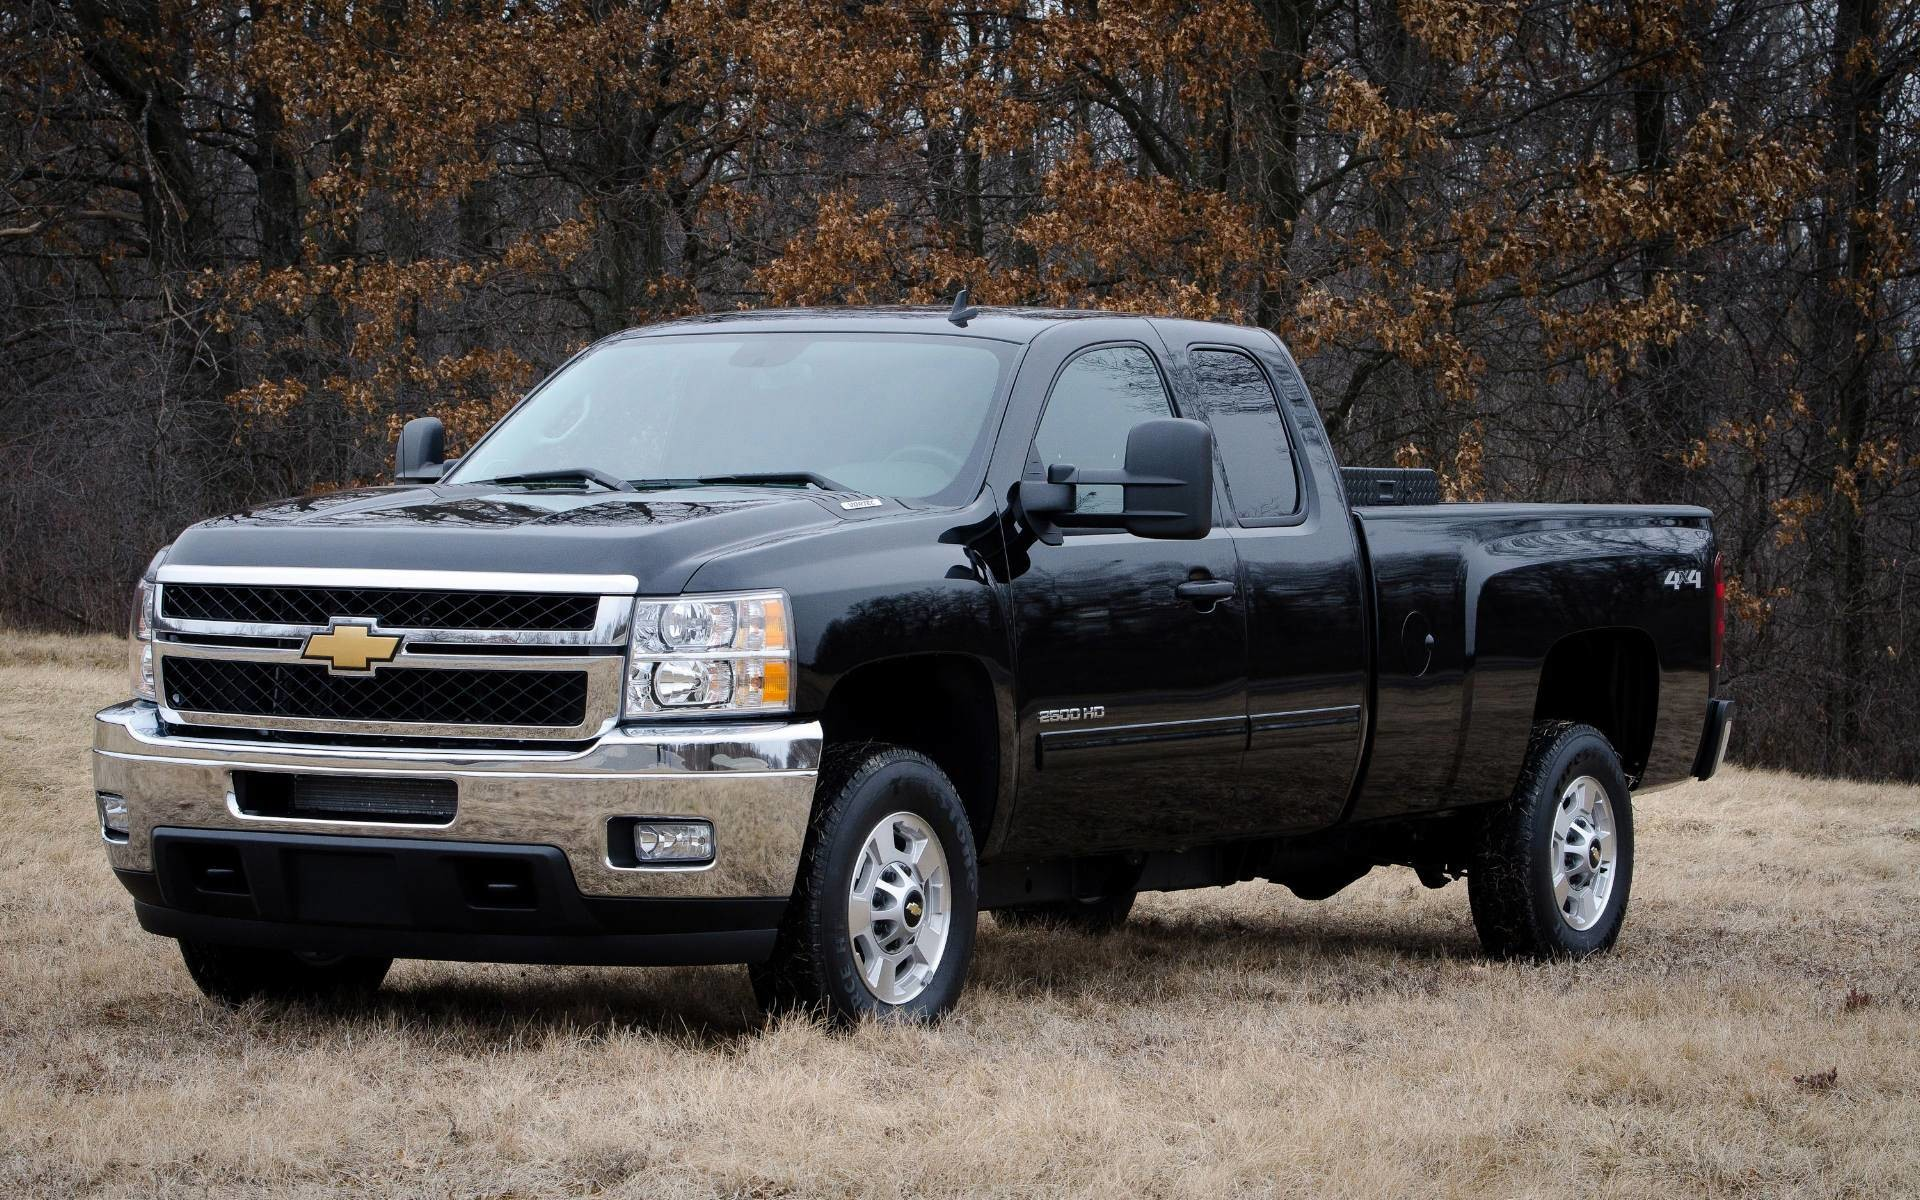 2013 Chevrolet Silverado Wallpapers | High Quality Wallpapers